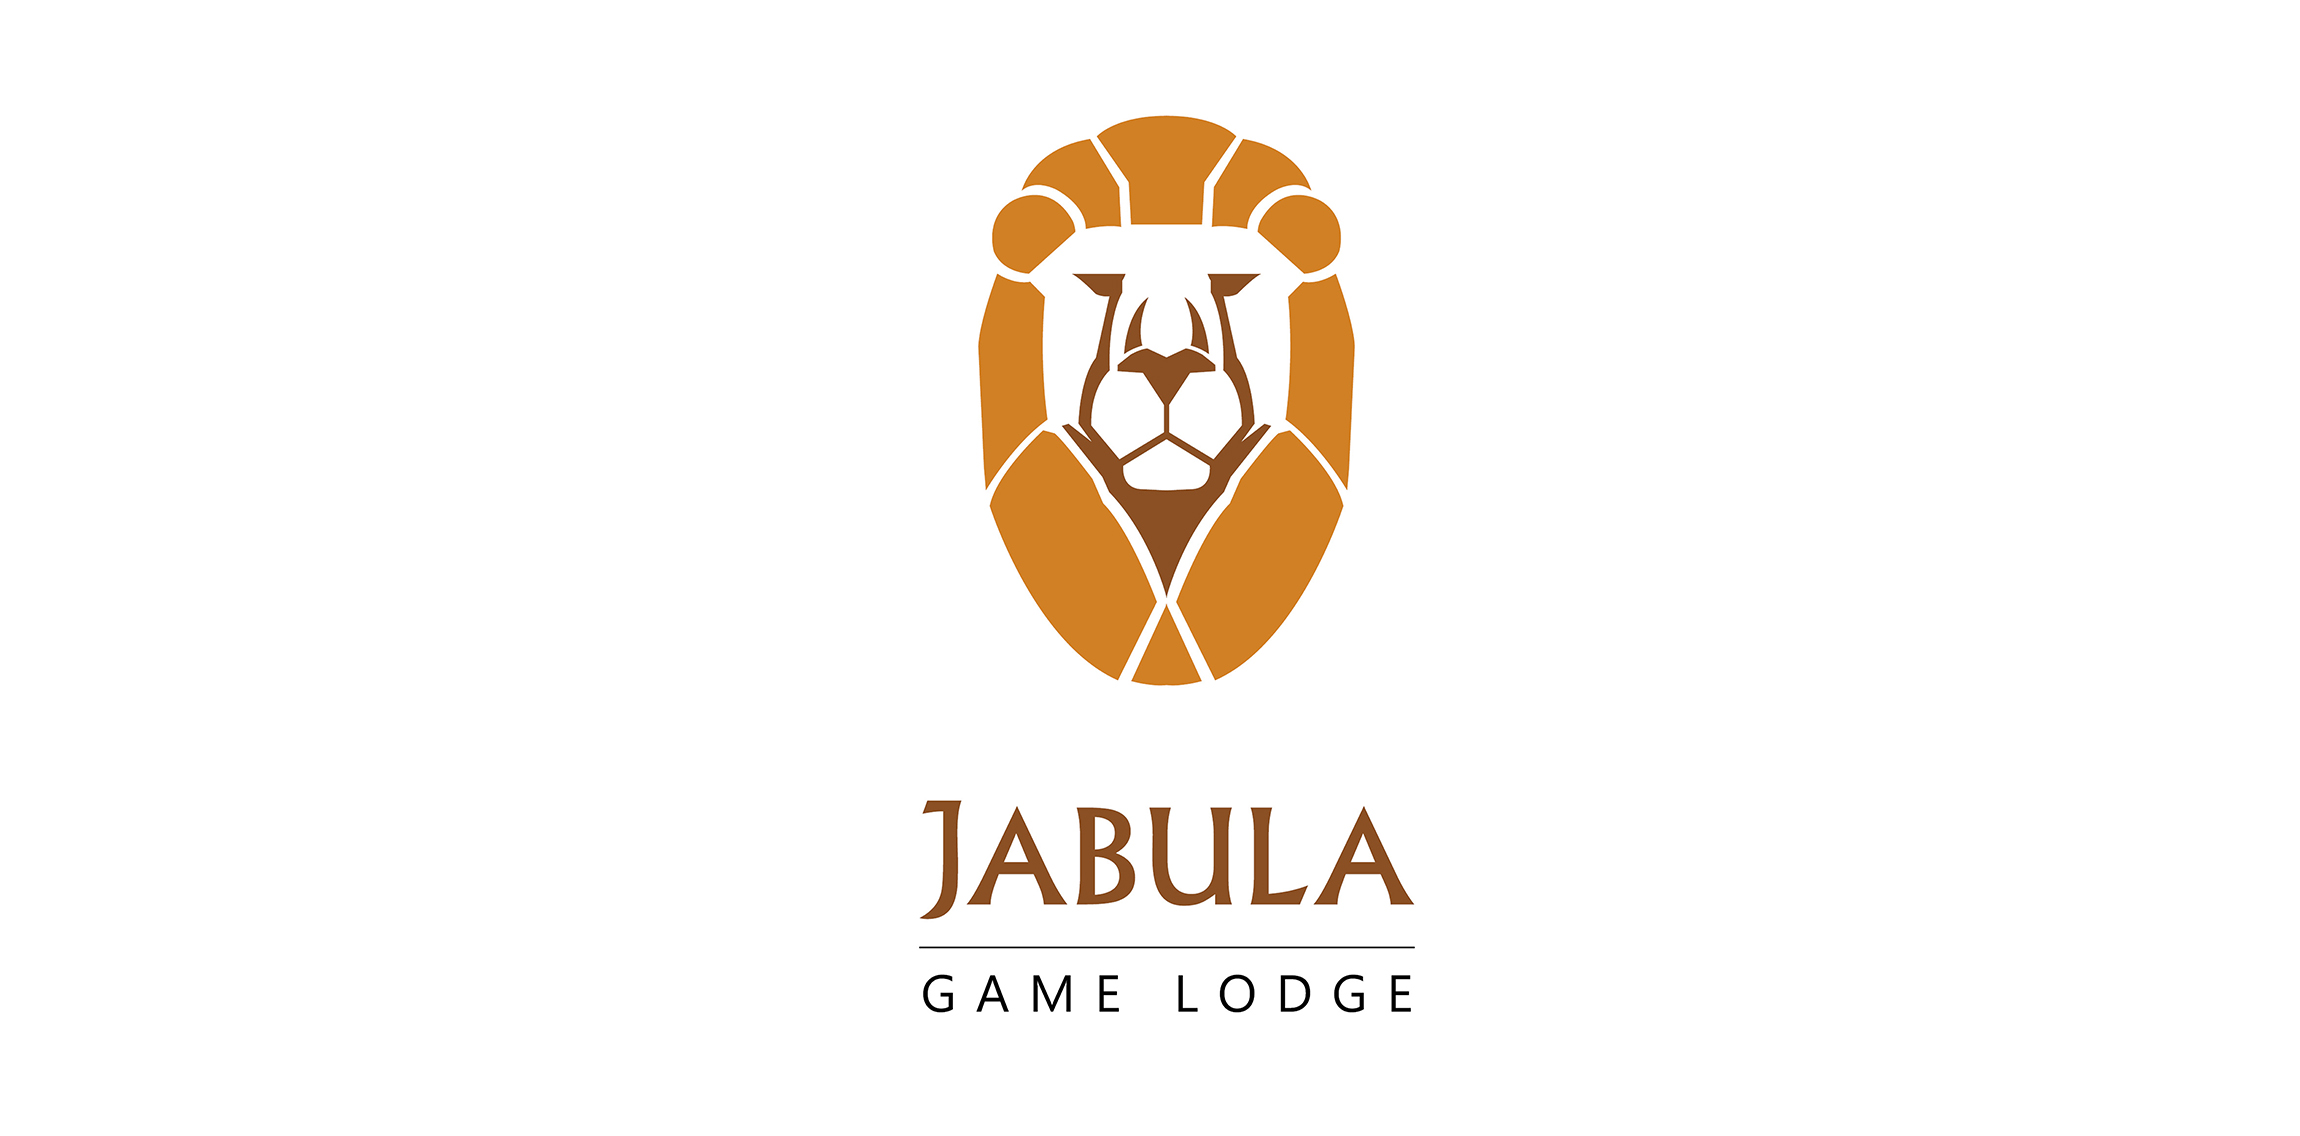 Jabula Game Lodge